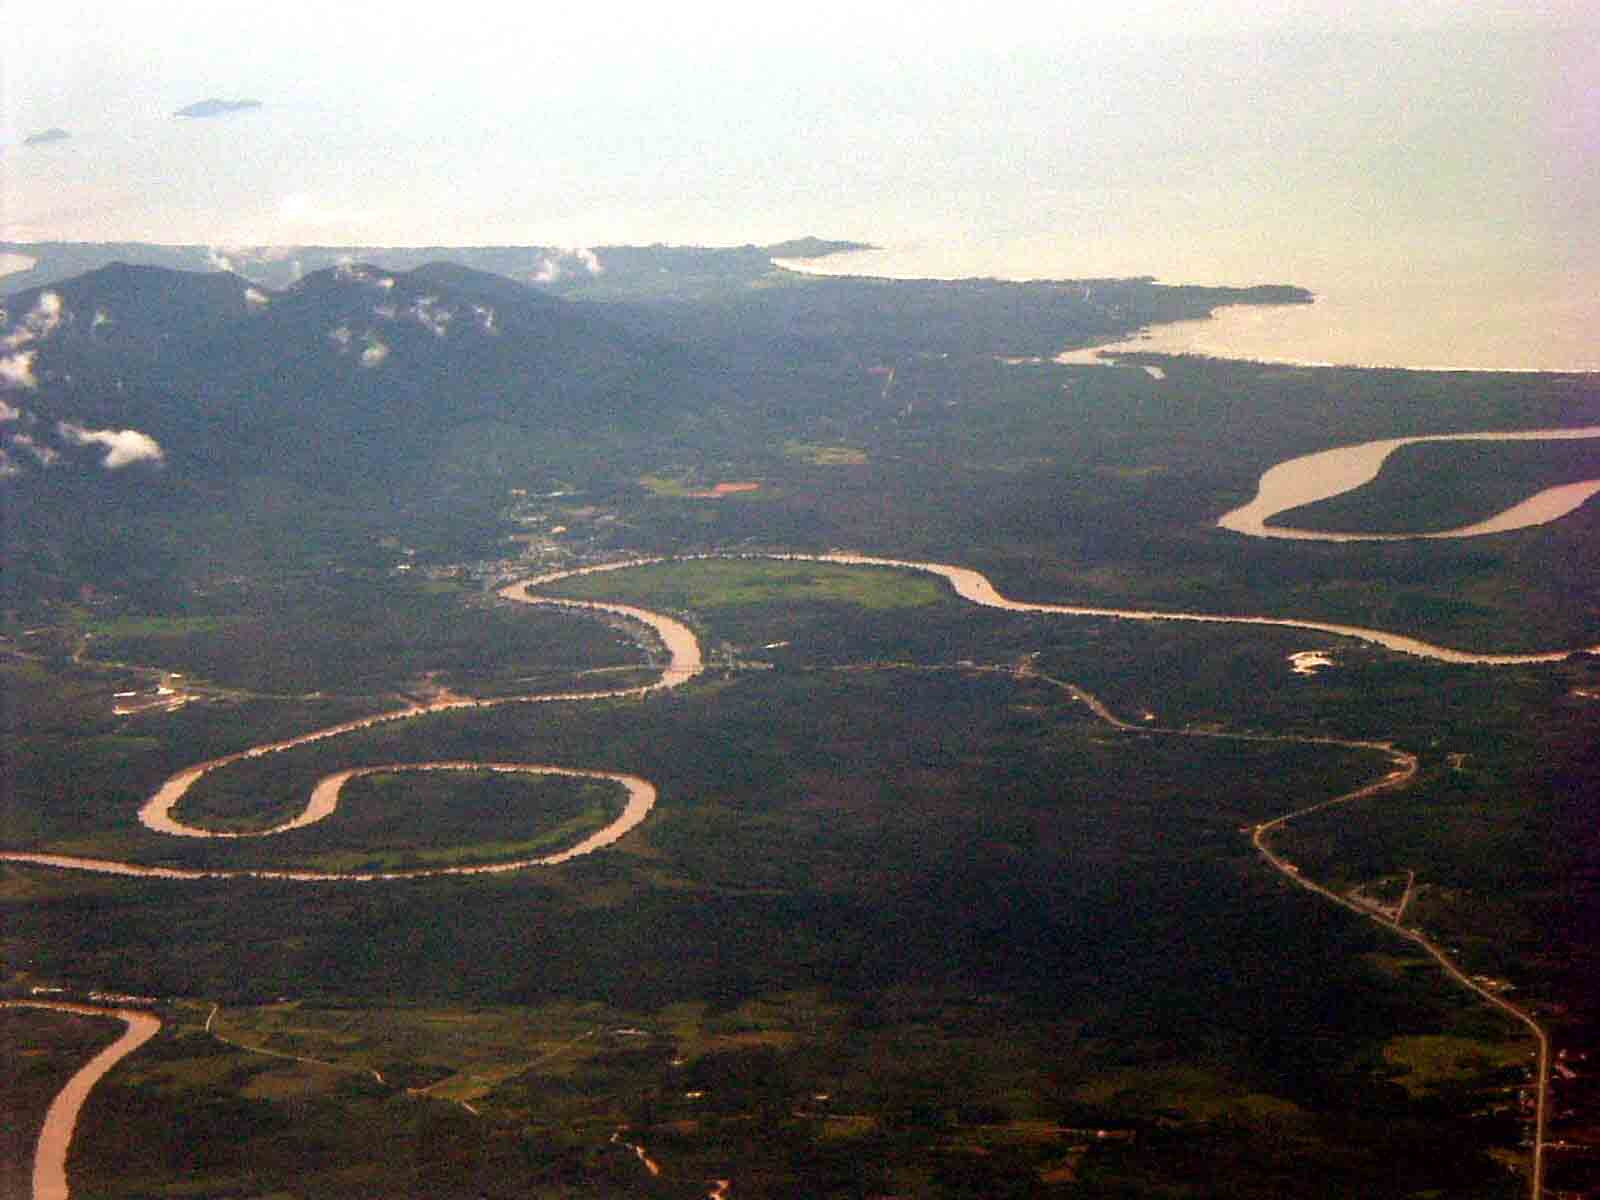 Lundu area from airliner